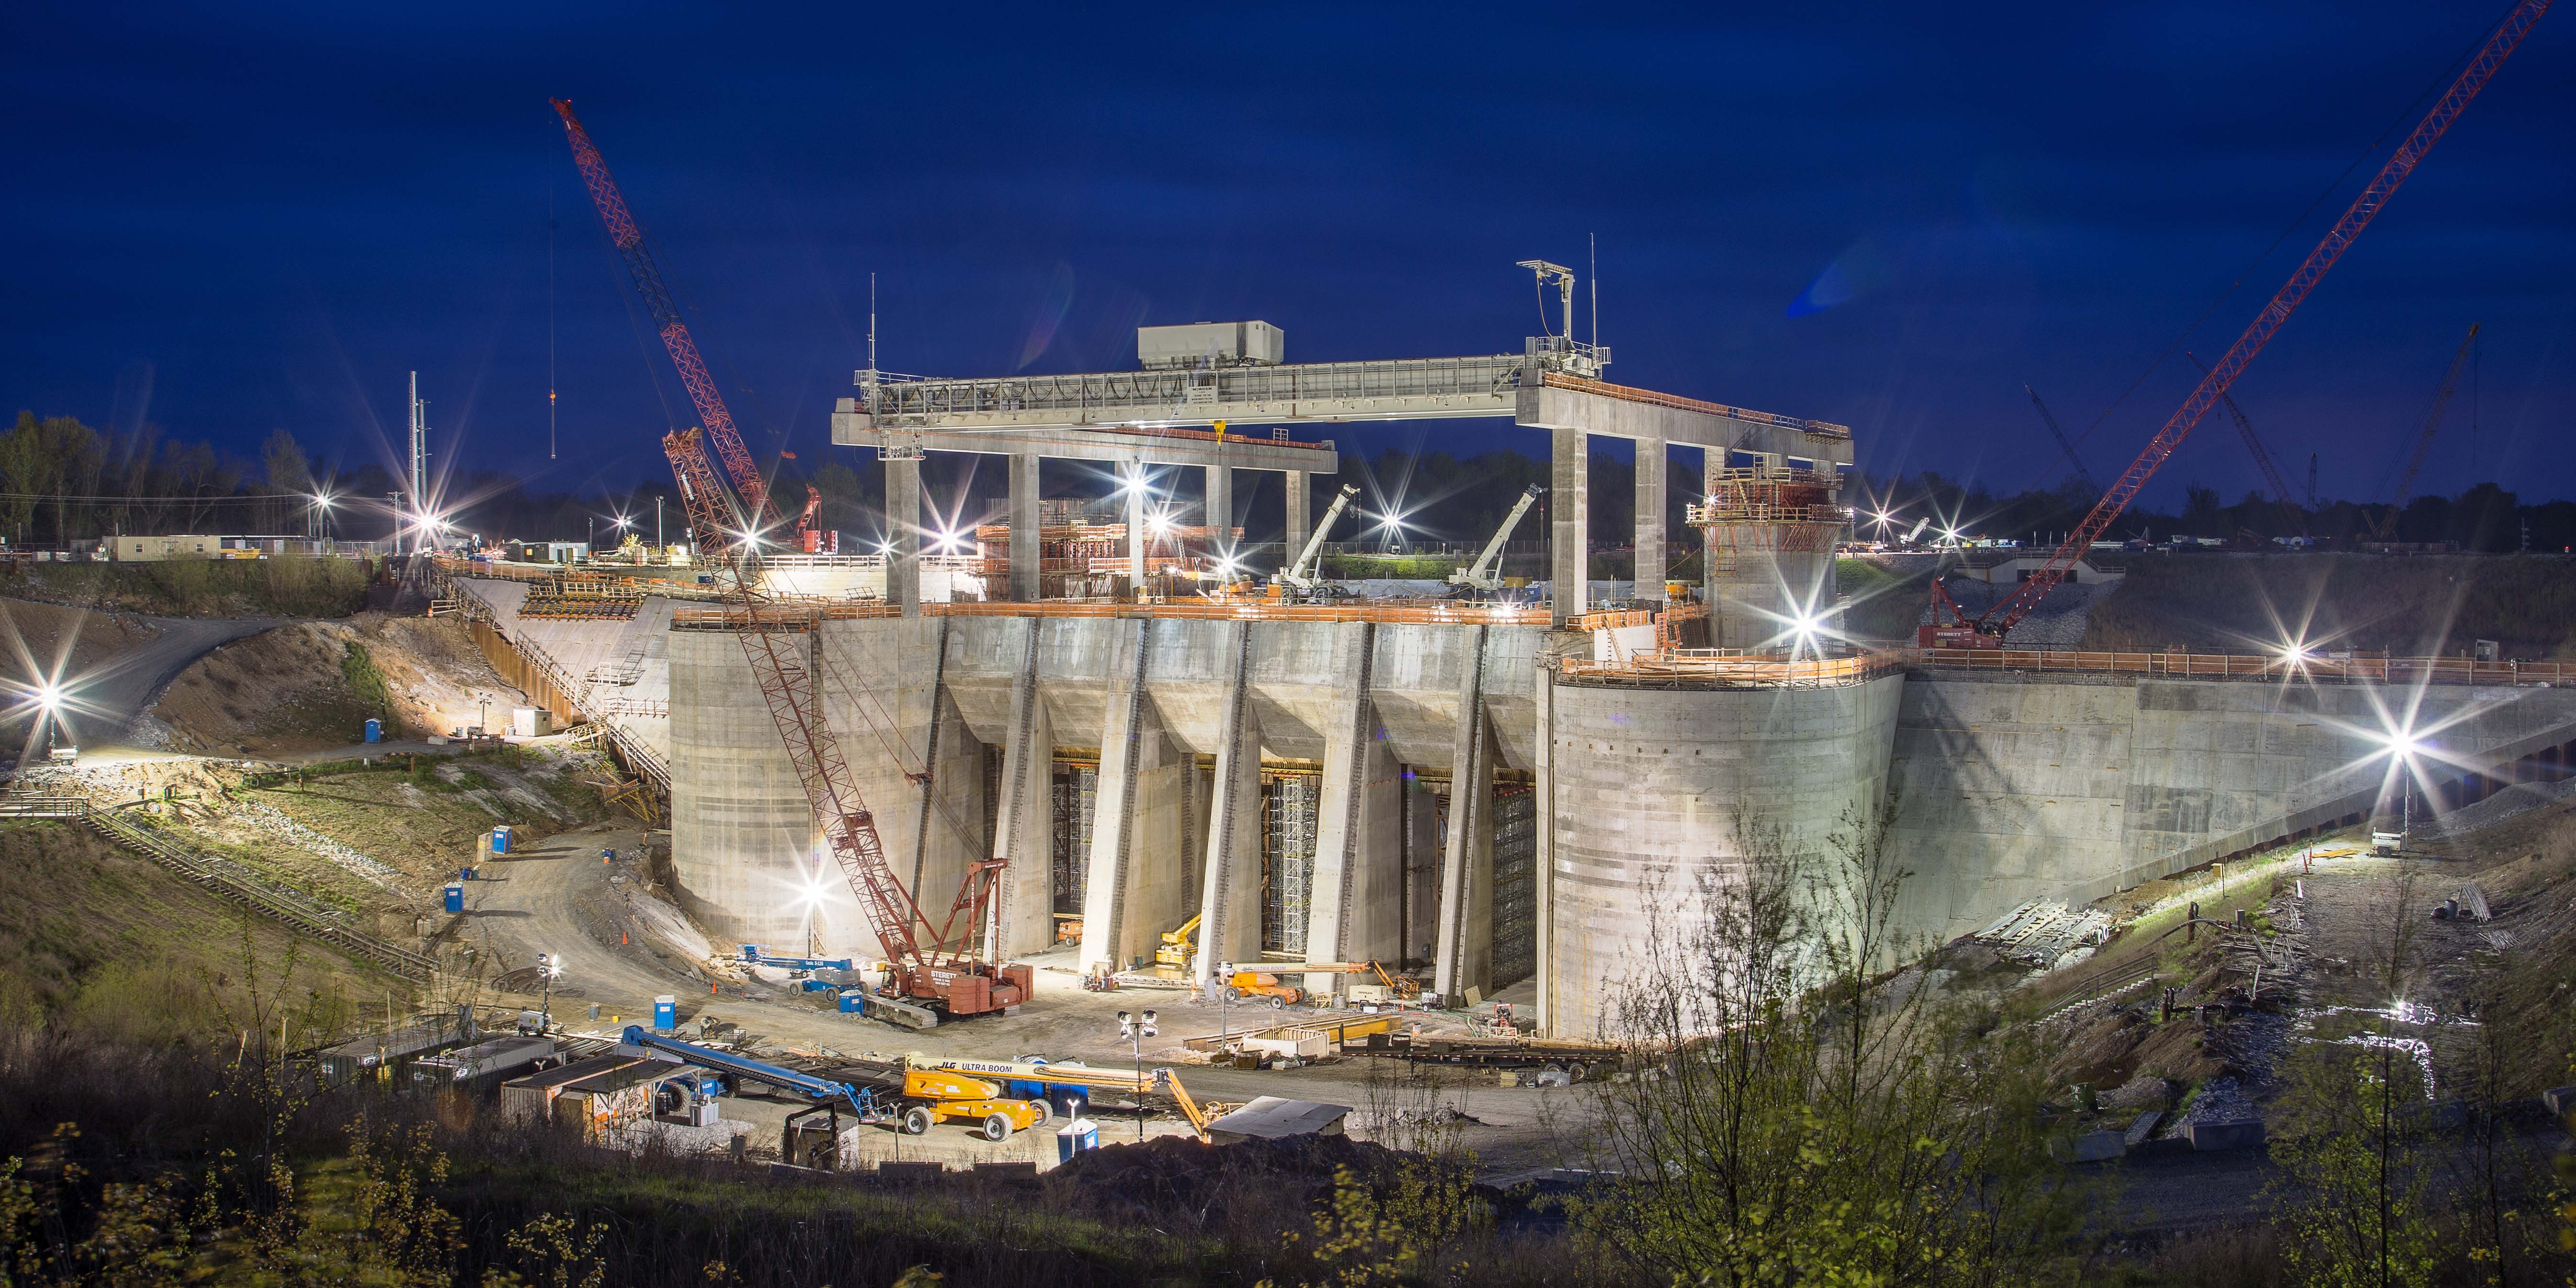 The future of American hydropower